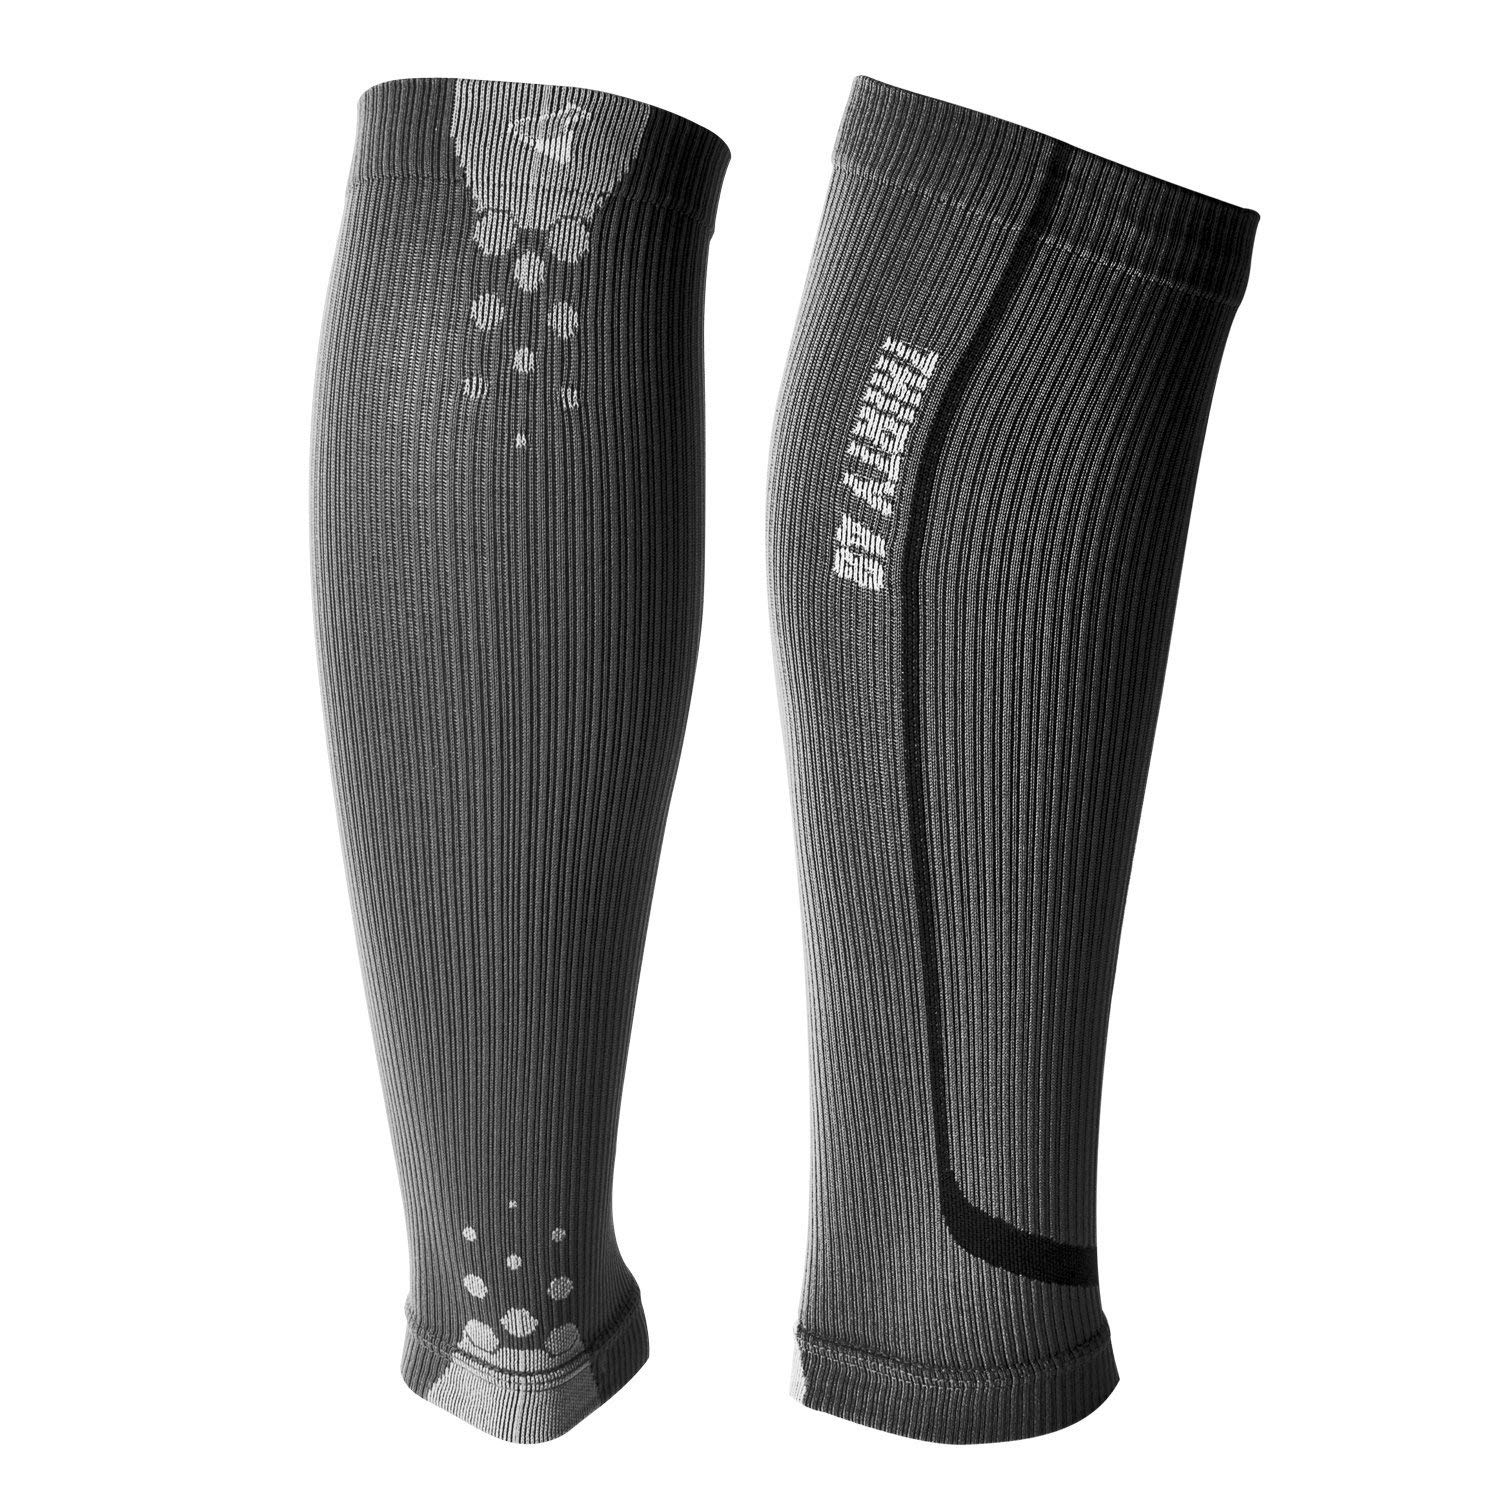 Thirty48 Cp Compression Sleeves Gray-Black Size Small